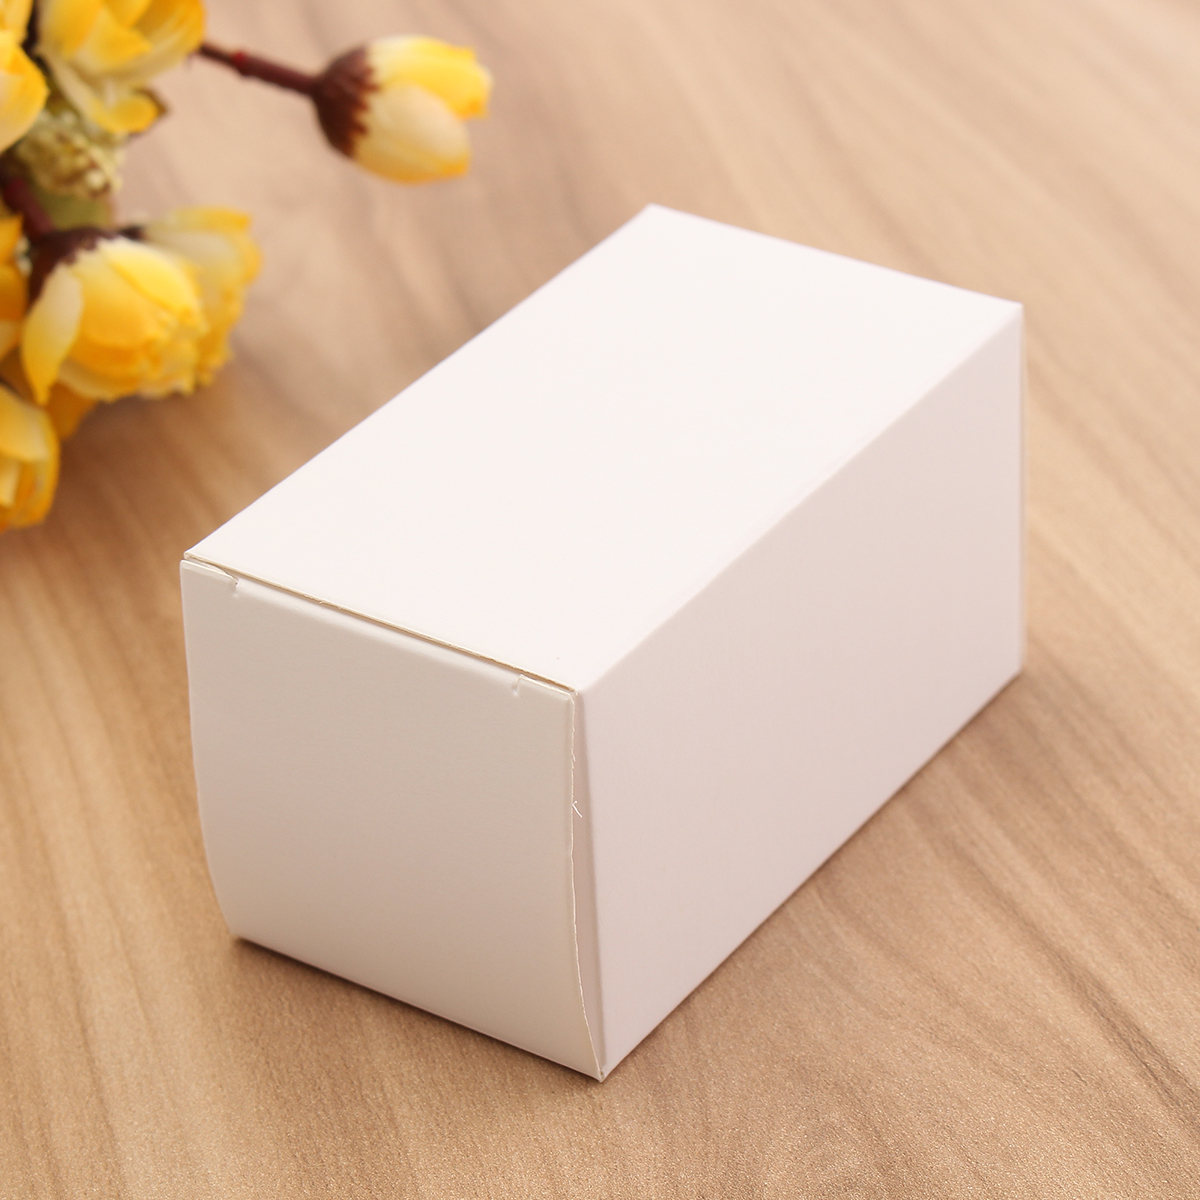 20 Different Sizes White Cardboard Postal Box Storage Carton for Gifs Crafting Packaging Mailing